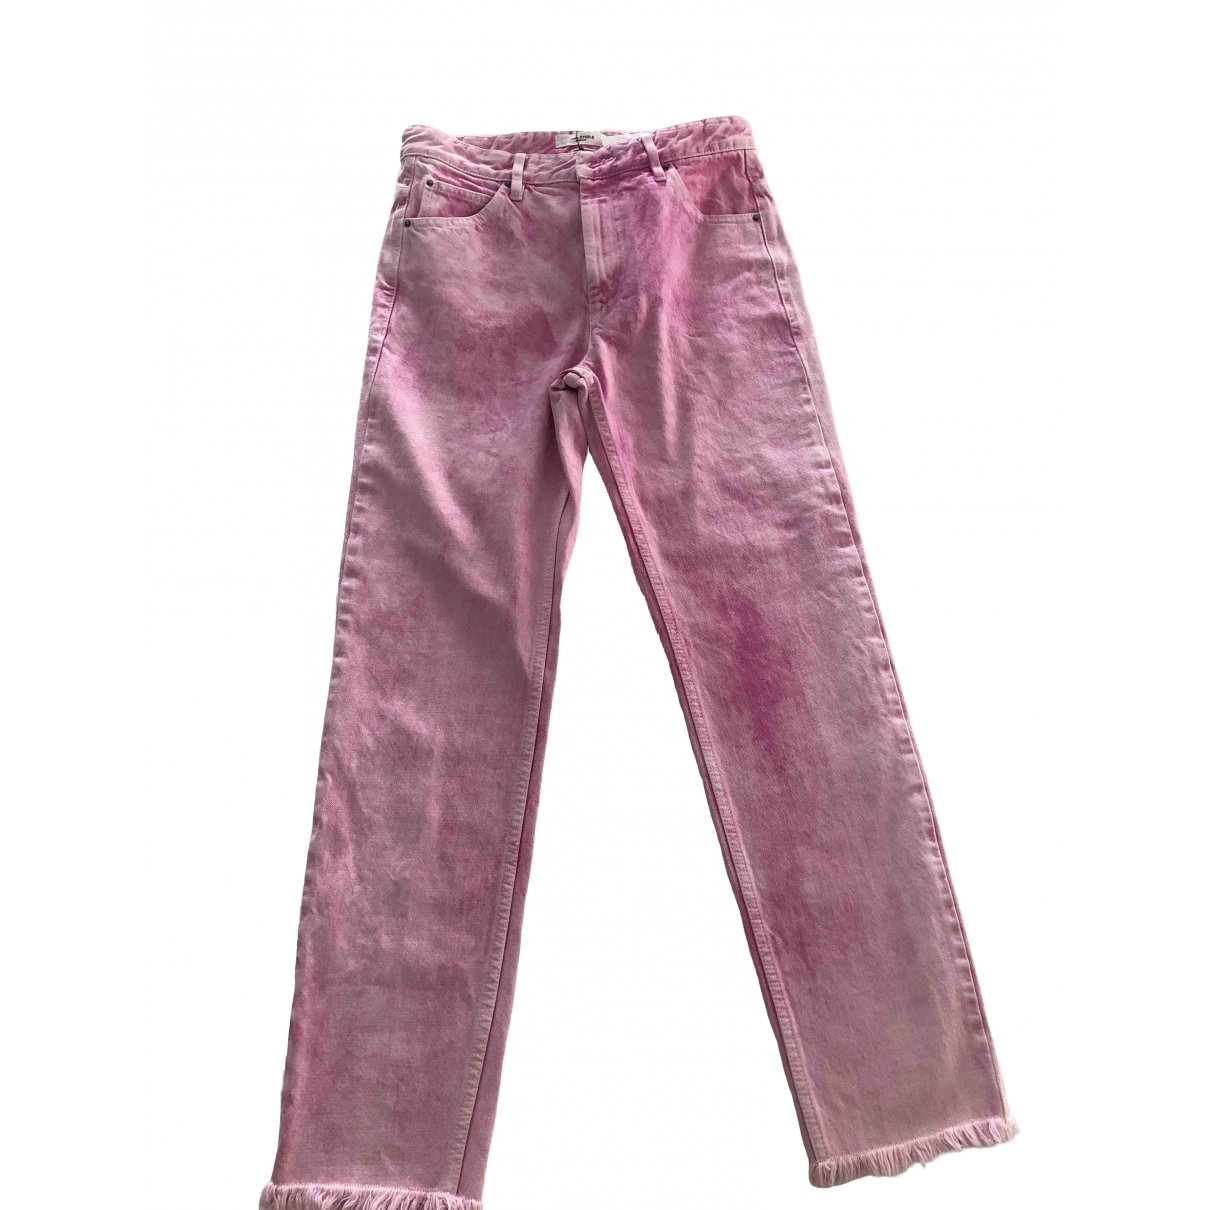 Isabel Marant Etoile \N Pink Cotton Jeans for Women 38 FR